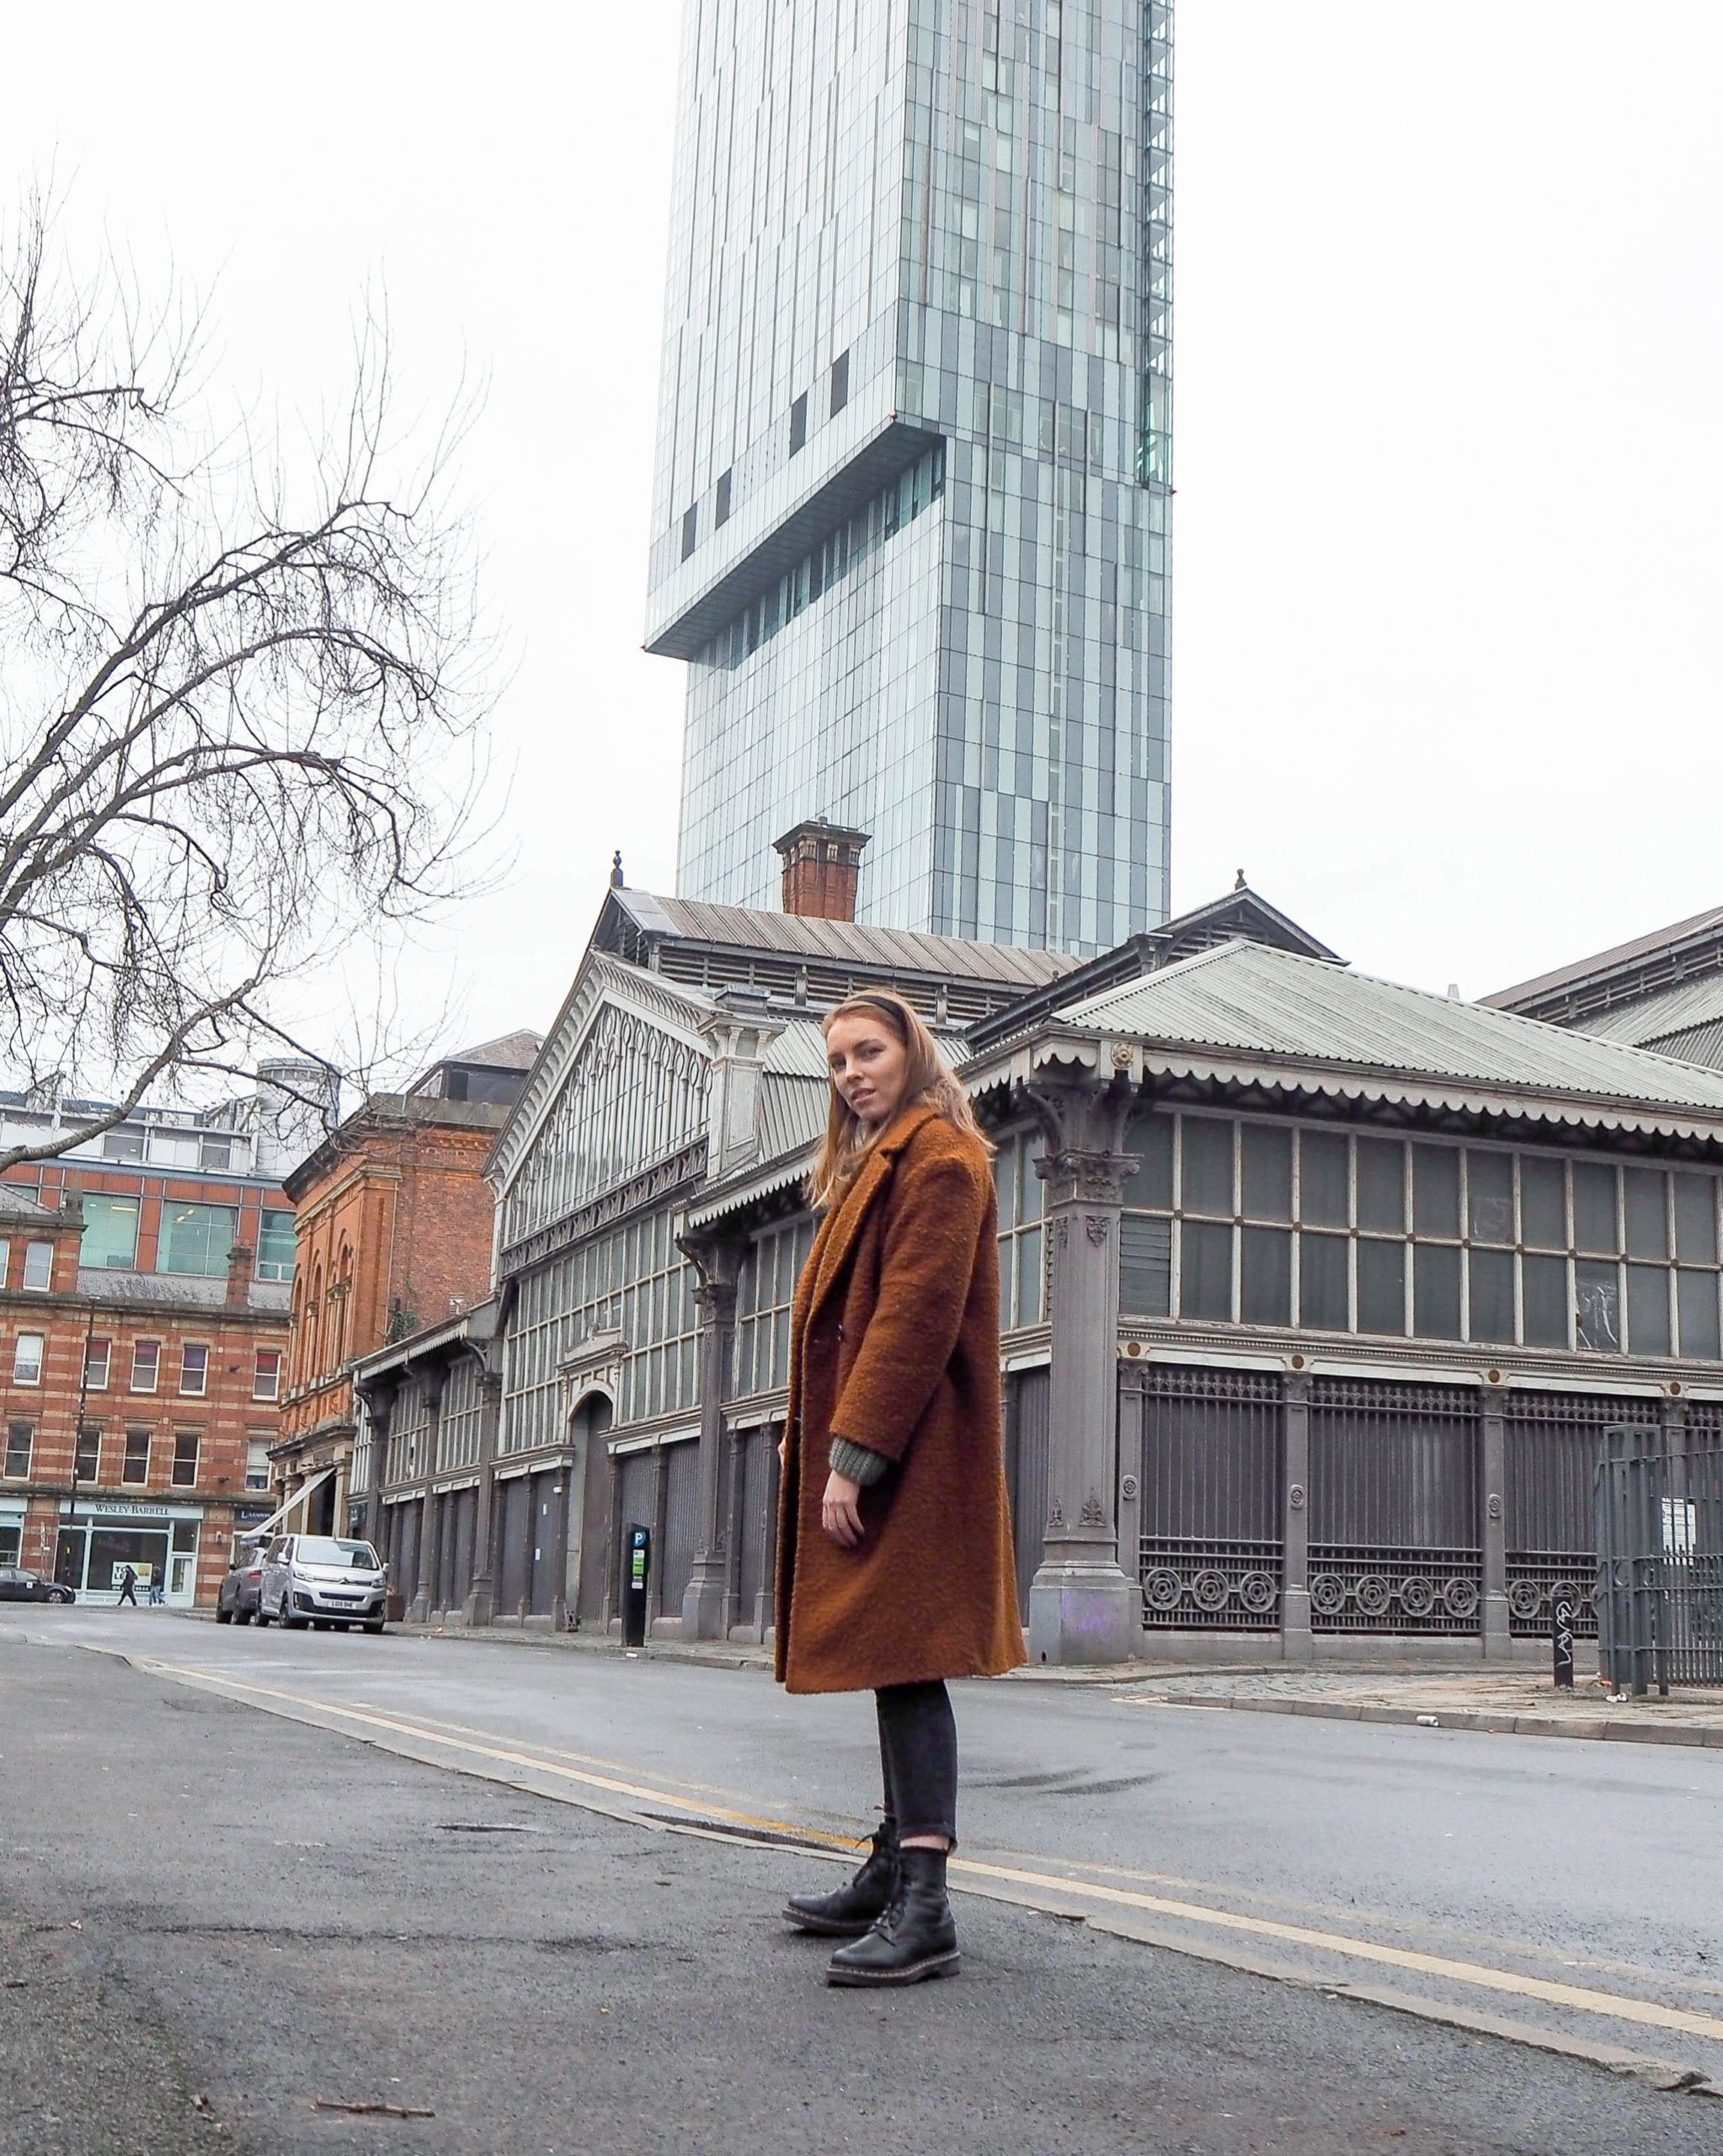 street style photography taken in Manchester girl wearing wool coat and dr Martens